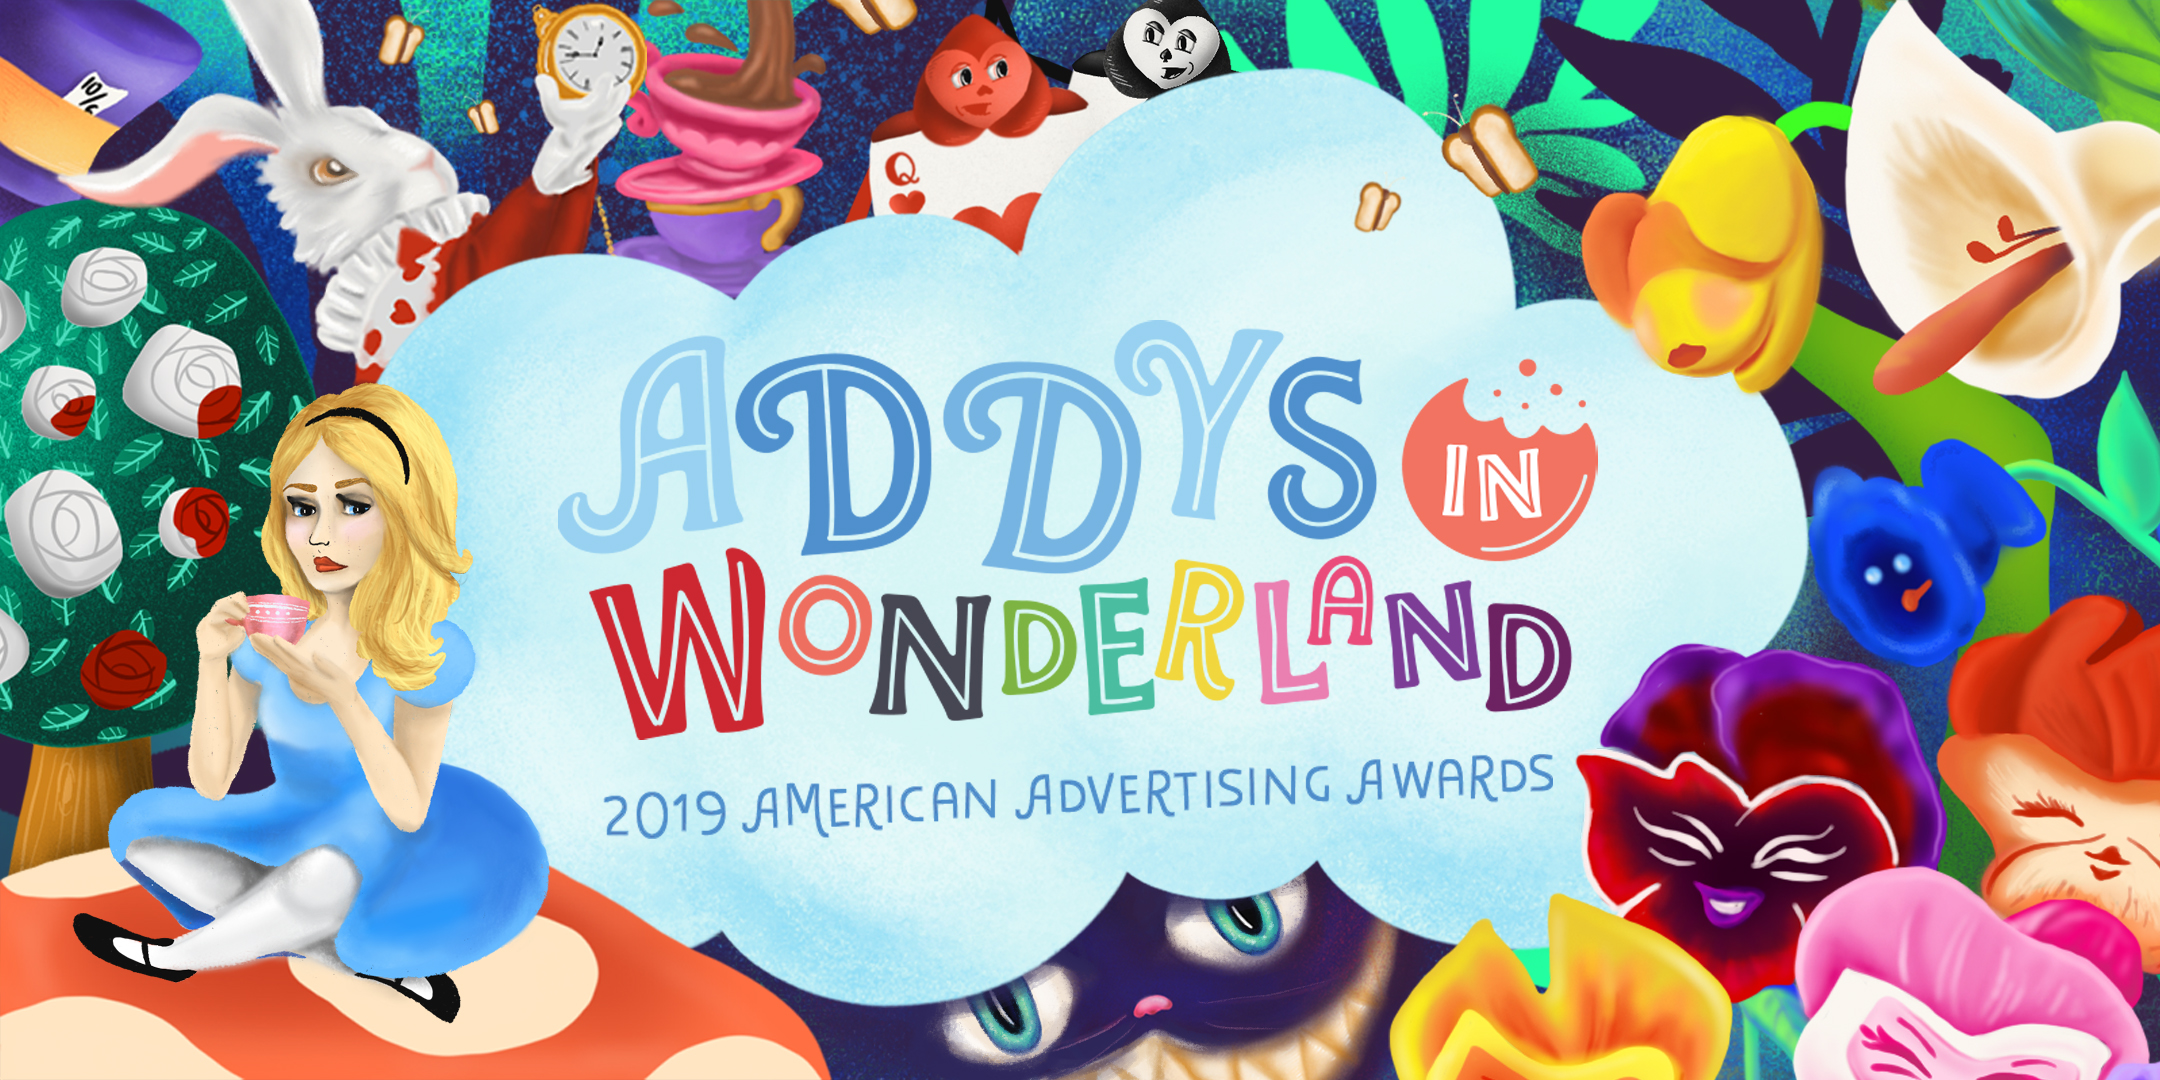 Custom Illustrations for the New Orleans Addy Awards